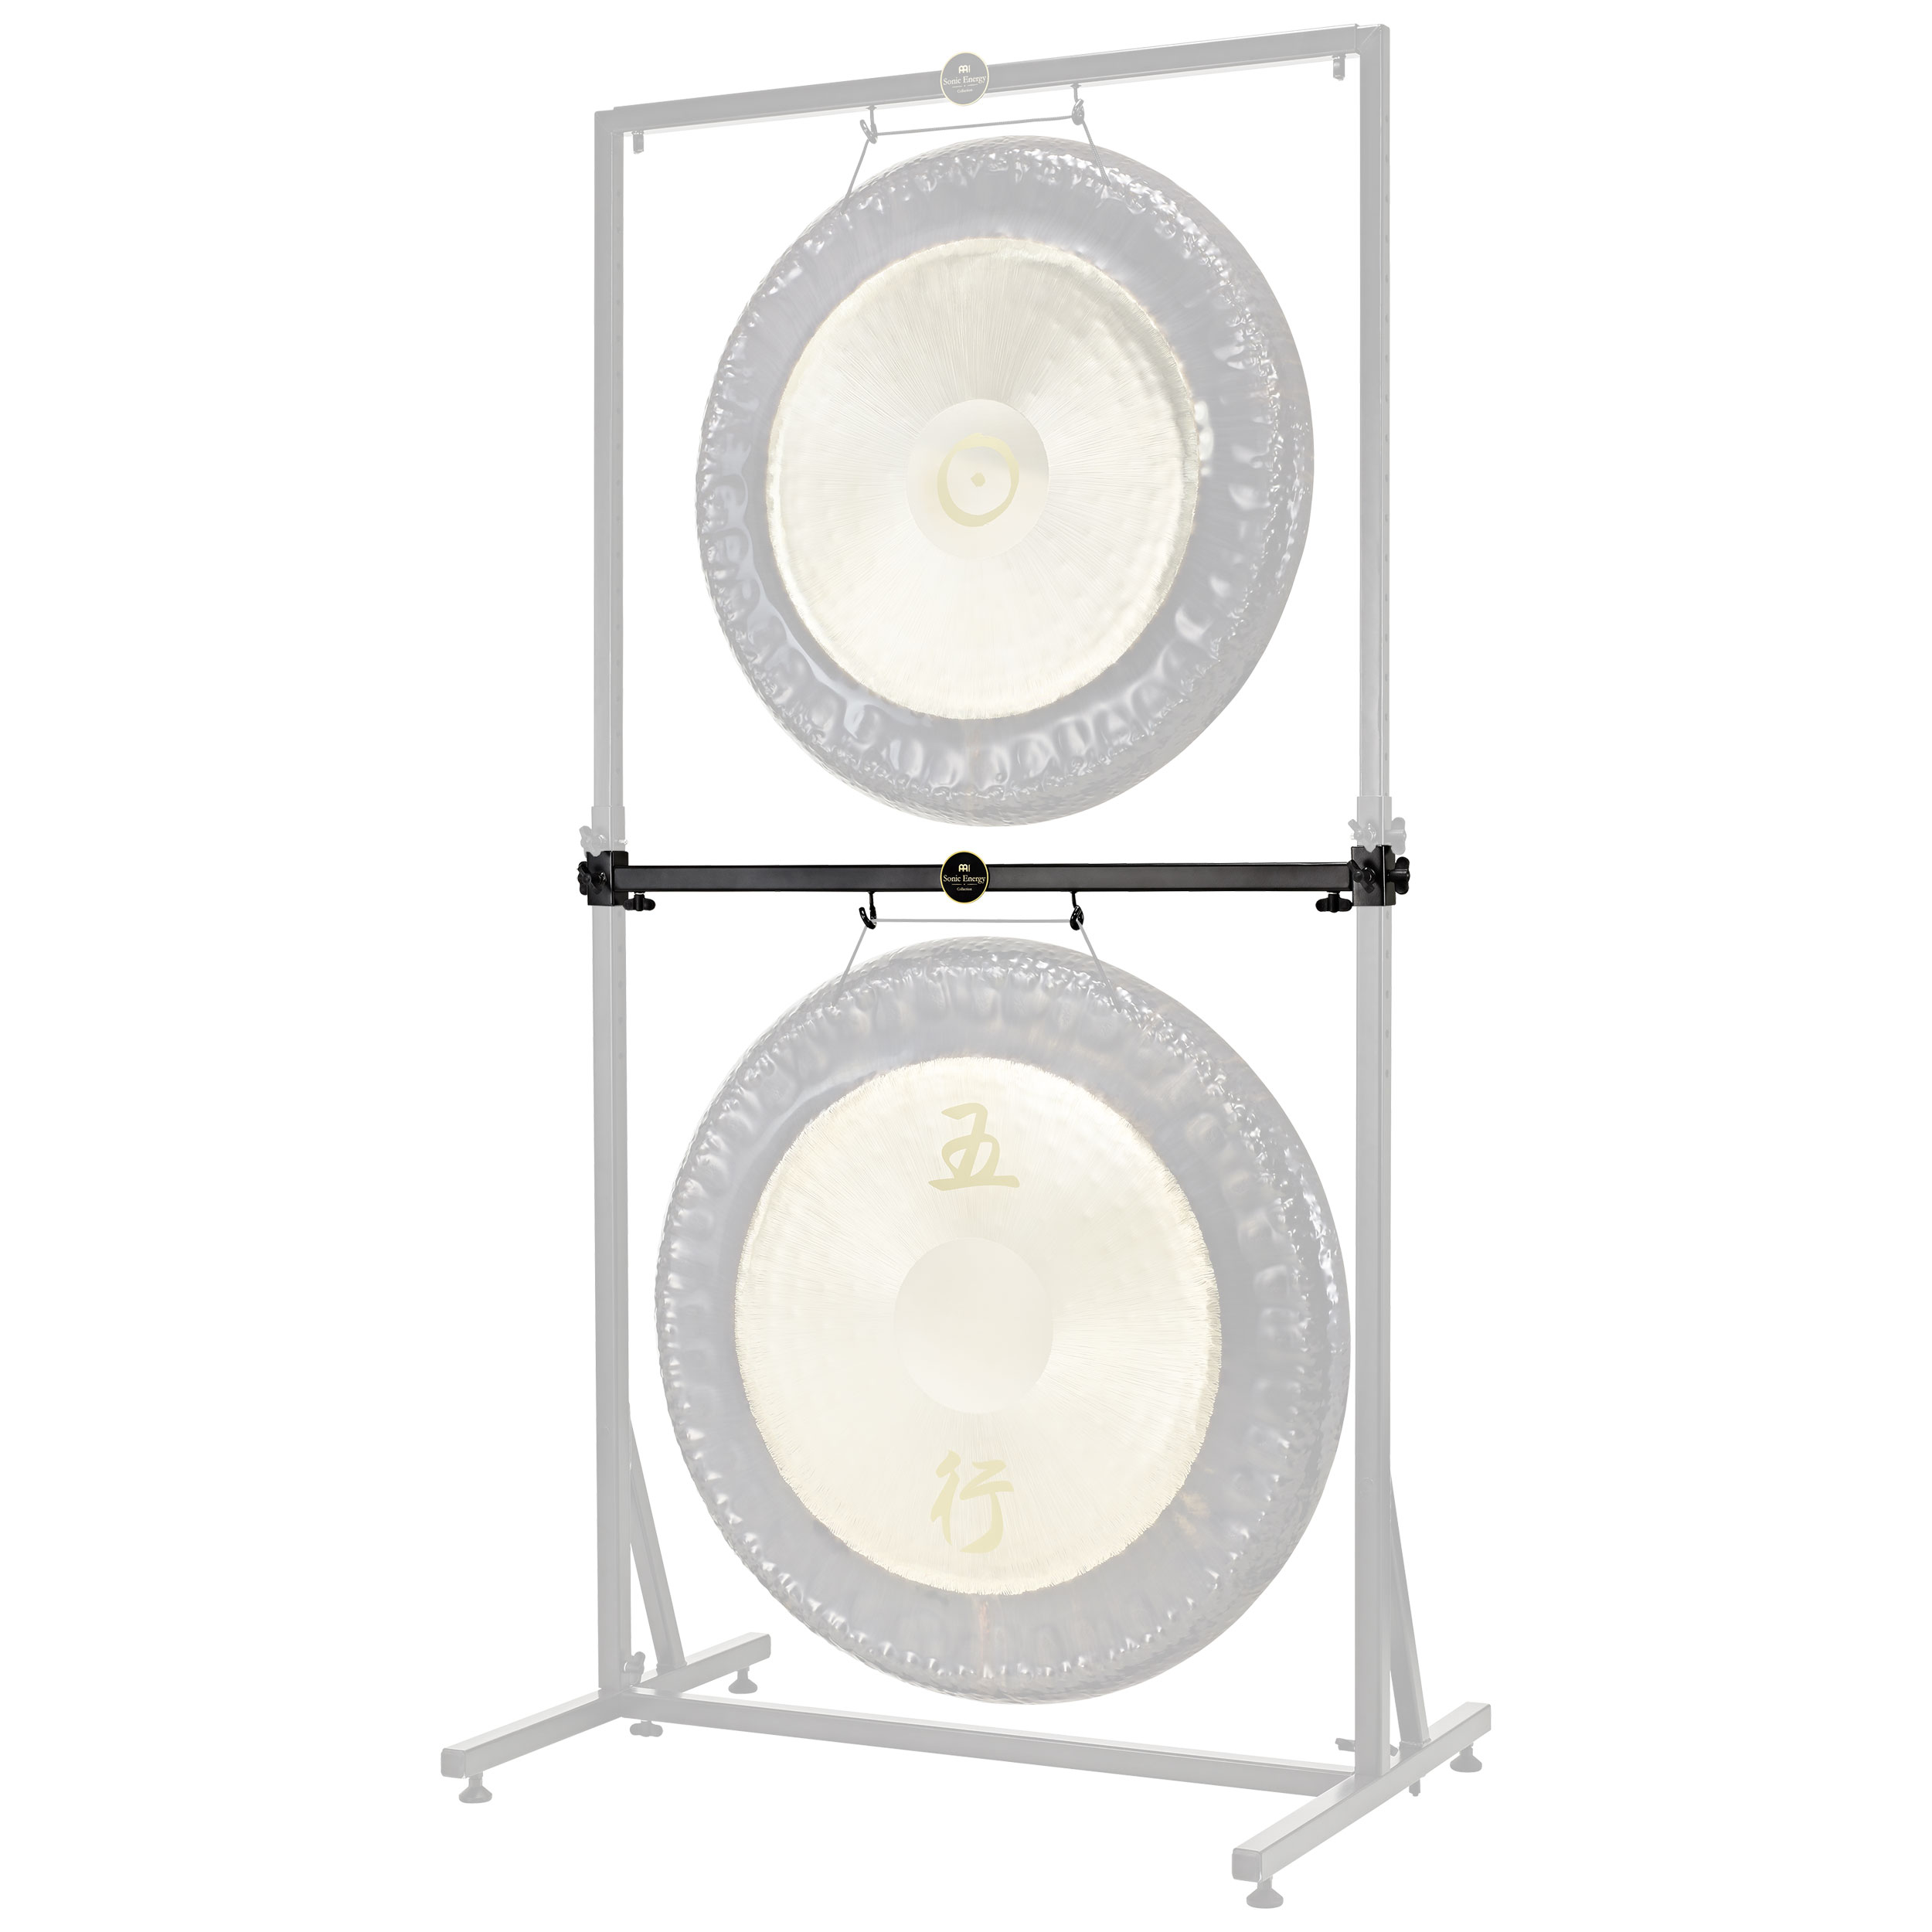 "Meinl Add-On Gong (Tam-Tam) Holder for Framed Gong Stand (up to 40"")"